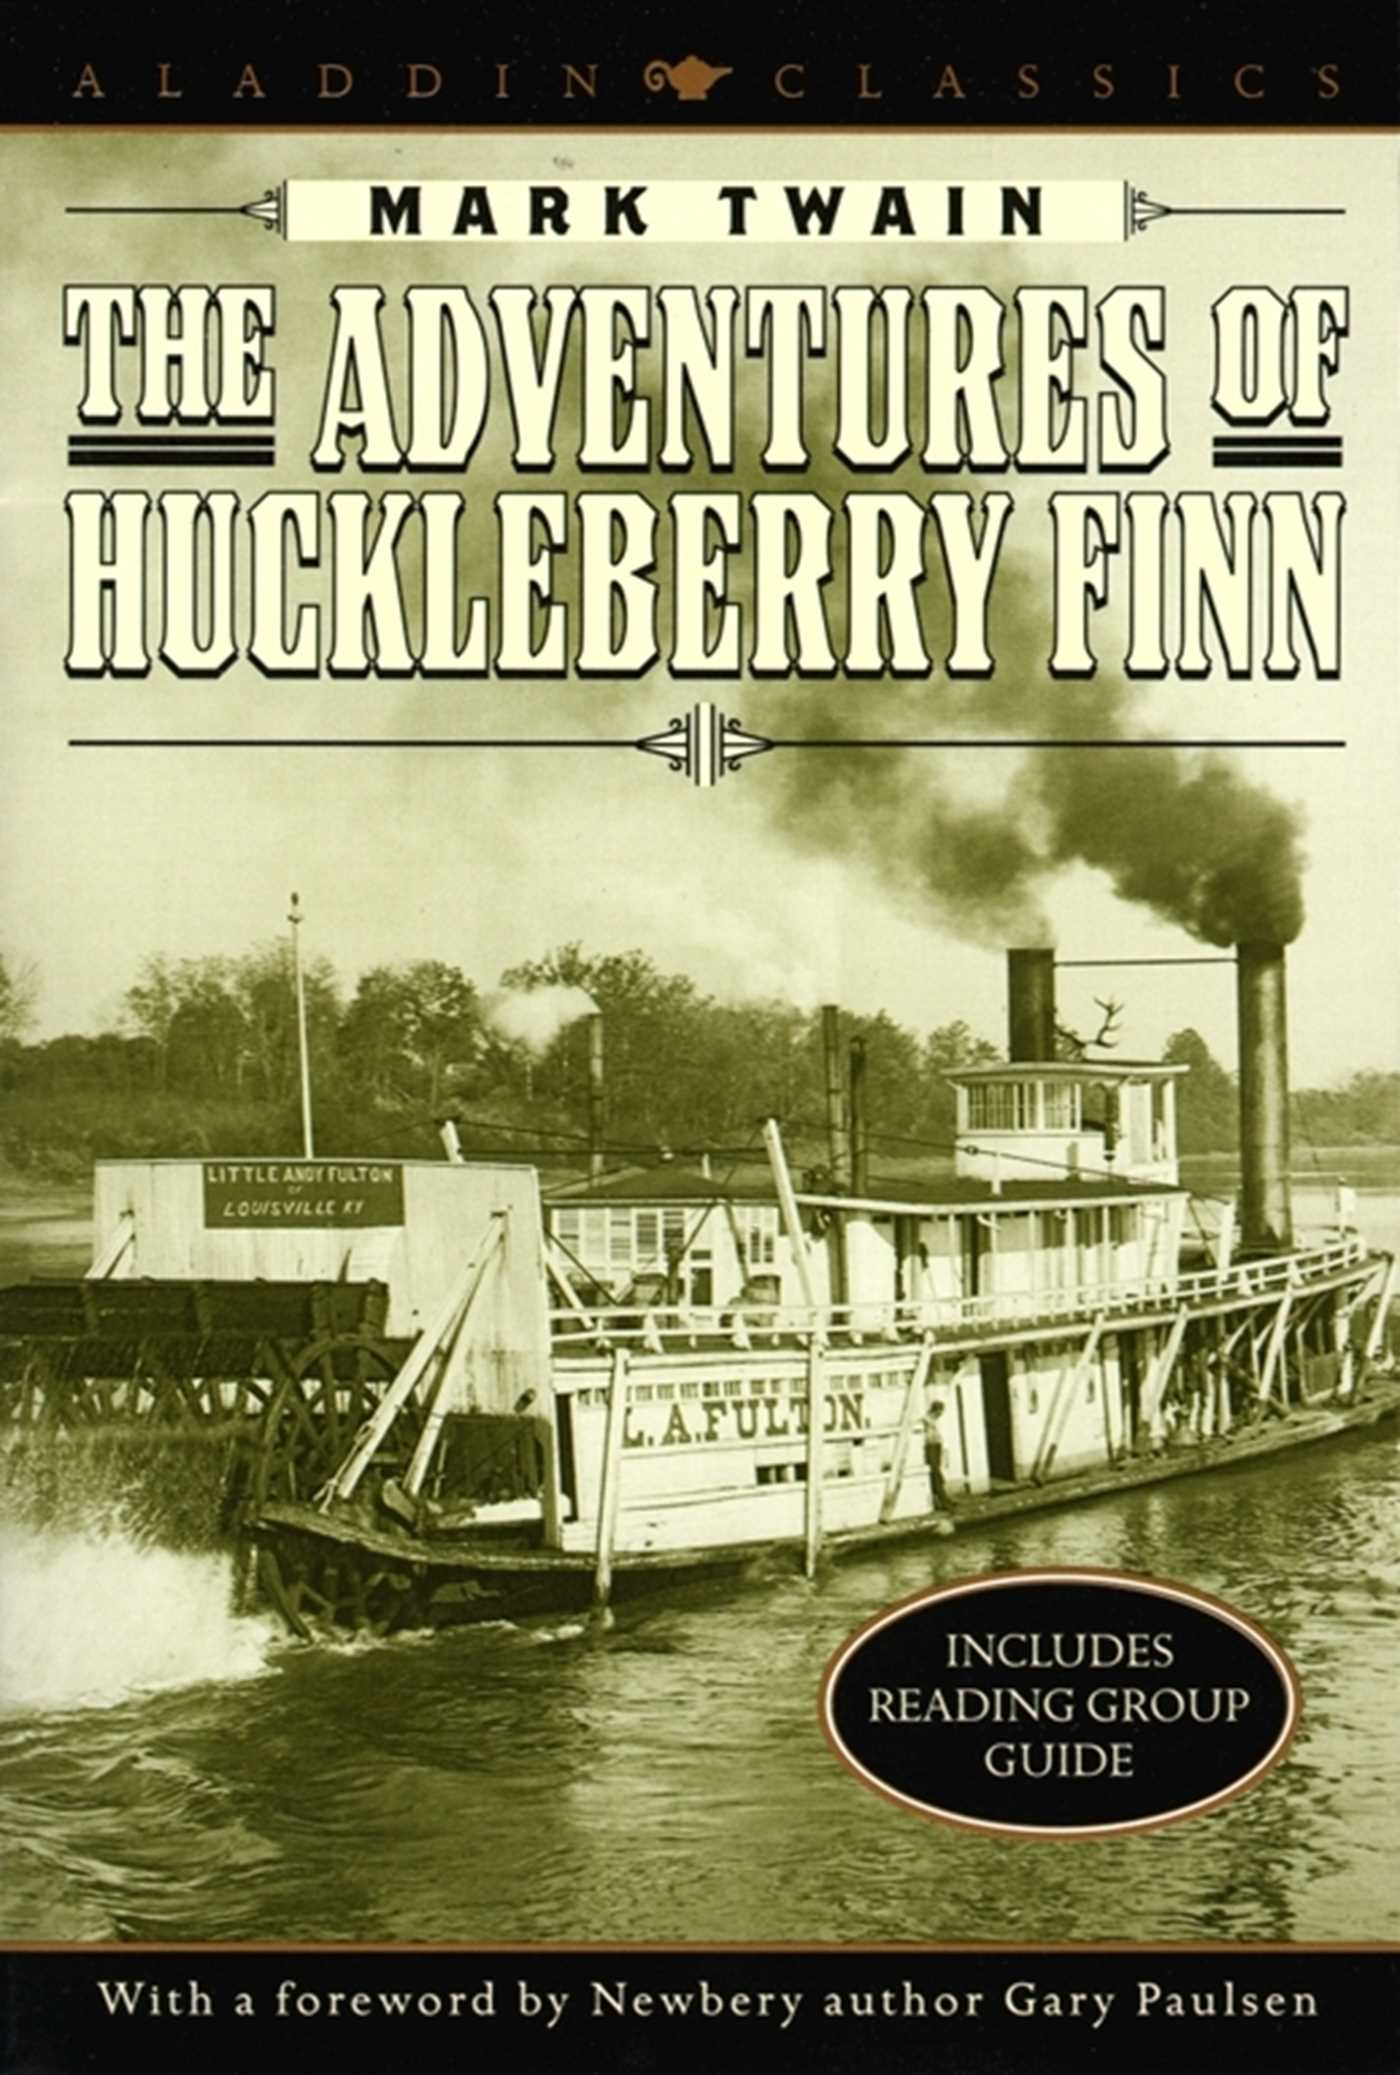 huckleberry finn as a narrator of mark twains novel Huck is the narrator of twain's book, the adventures of huckleberry finn in the book huck, a young boy from the american south, travels down the mississippi river with a runaway slave the two encounter many adventures and meet many different people.